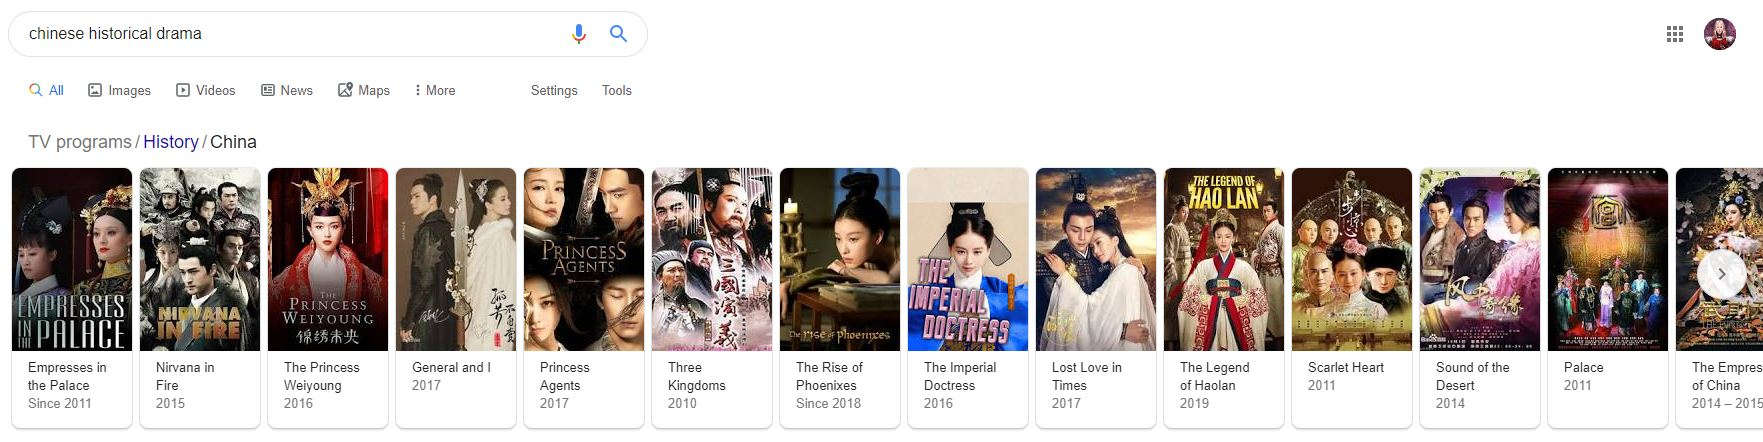 Chinese Historical Drama With Strong Female Lead